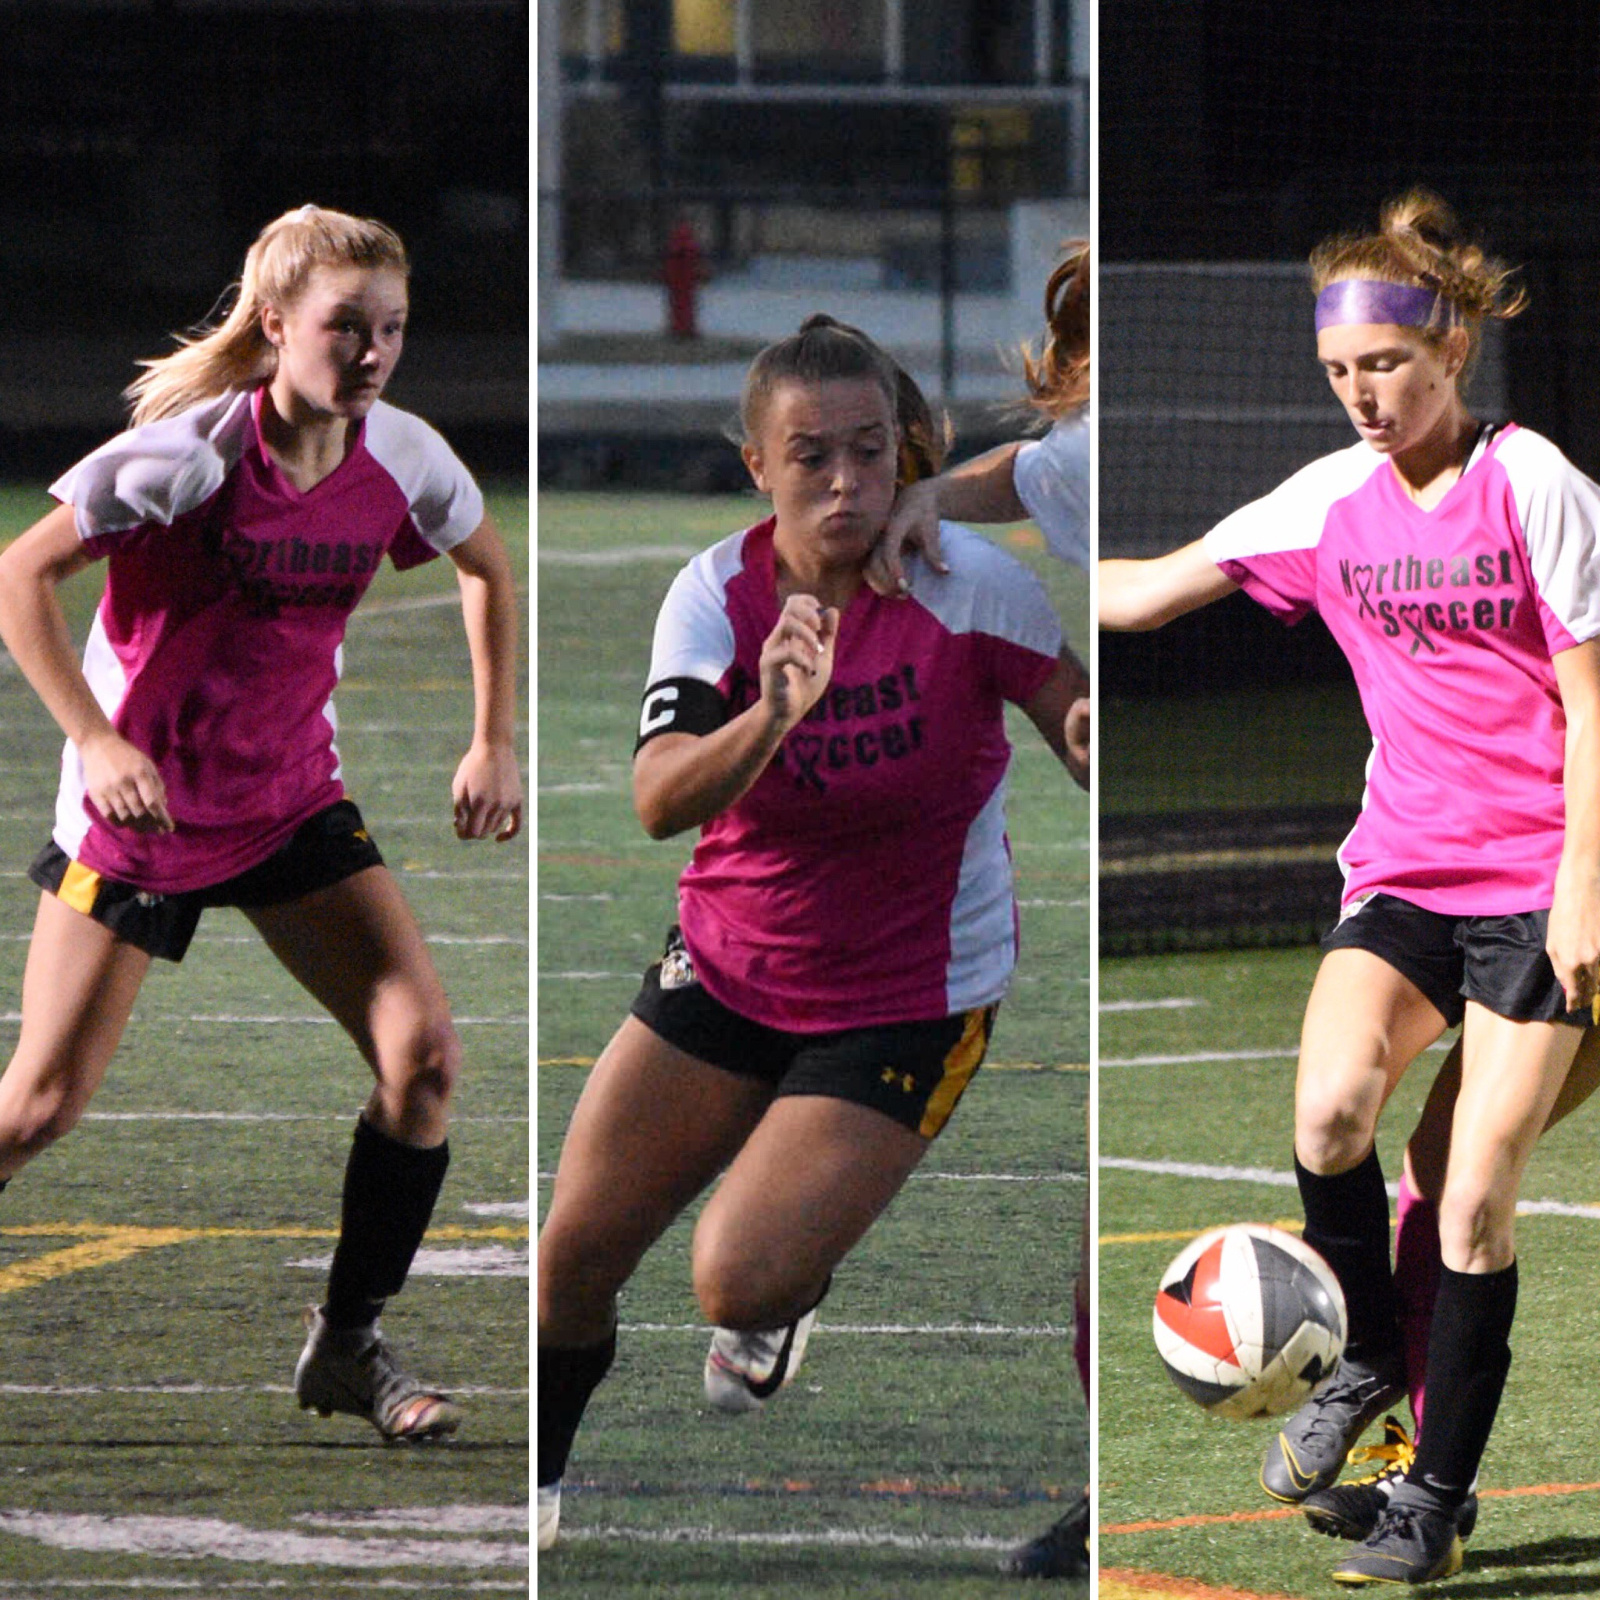 Congrats to Makenzie Boyd, Caitlyn Cornwell and Allyson Wills for Earning 2nd Team/ HM Honors!